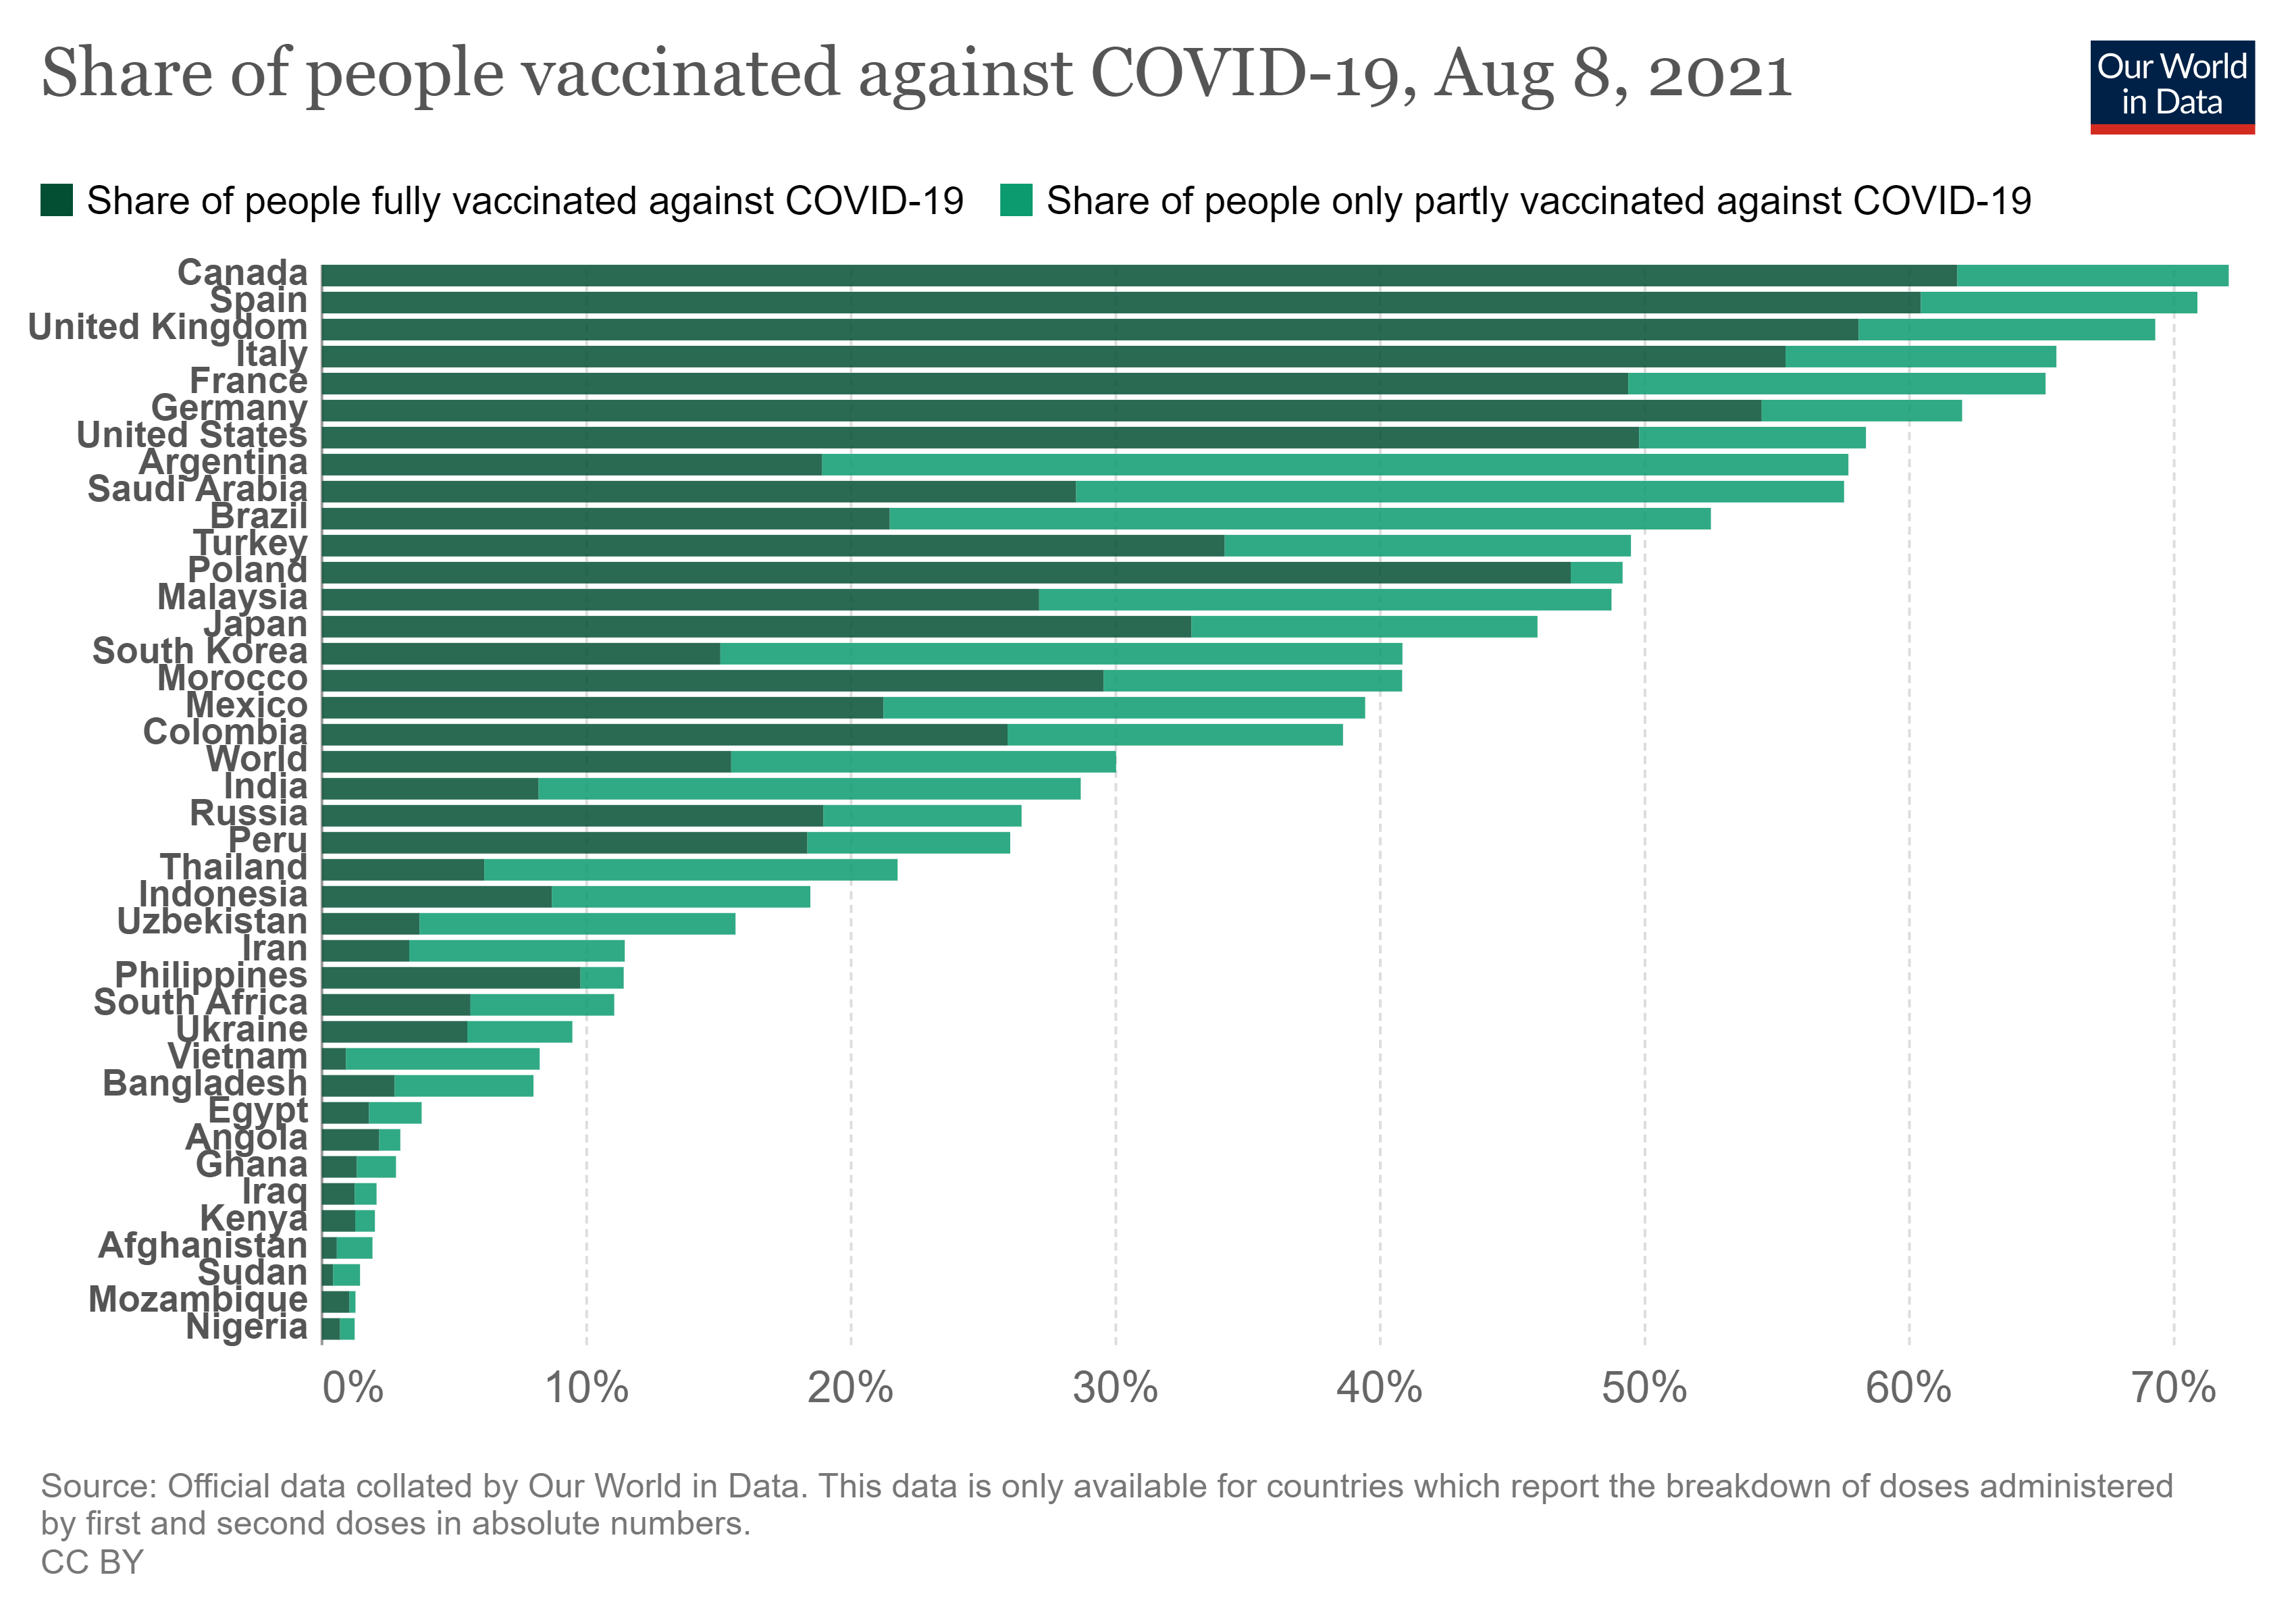 The vaccine roll-out is lagging in low-income countries.